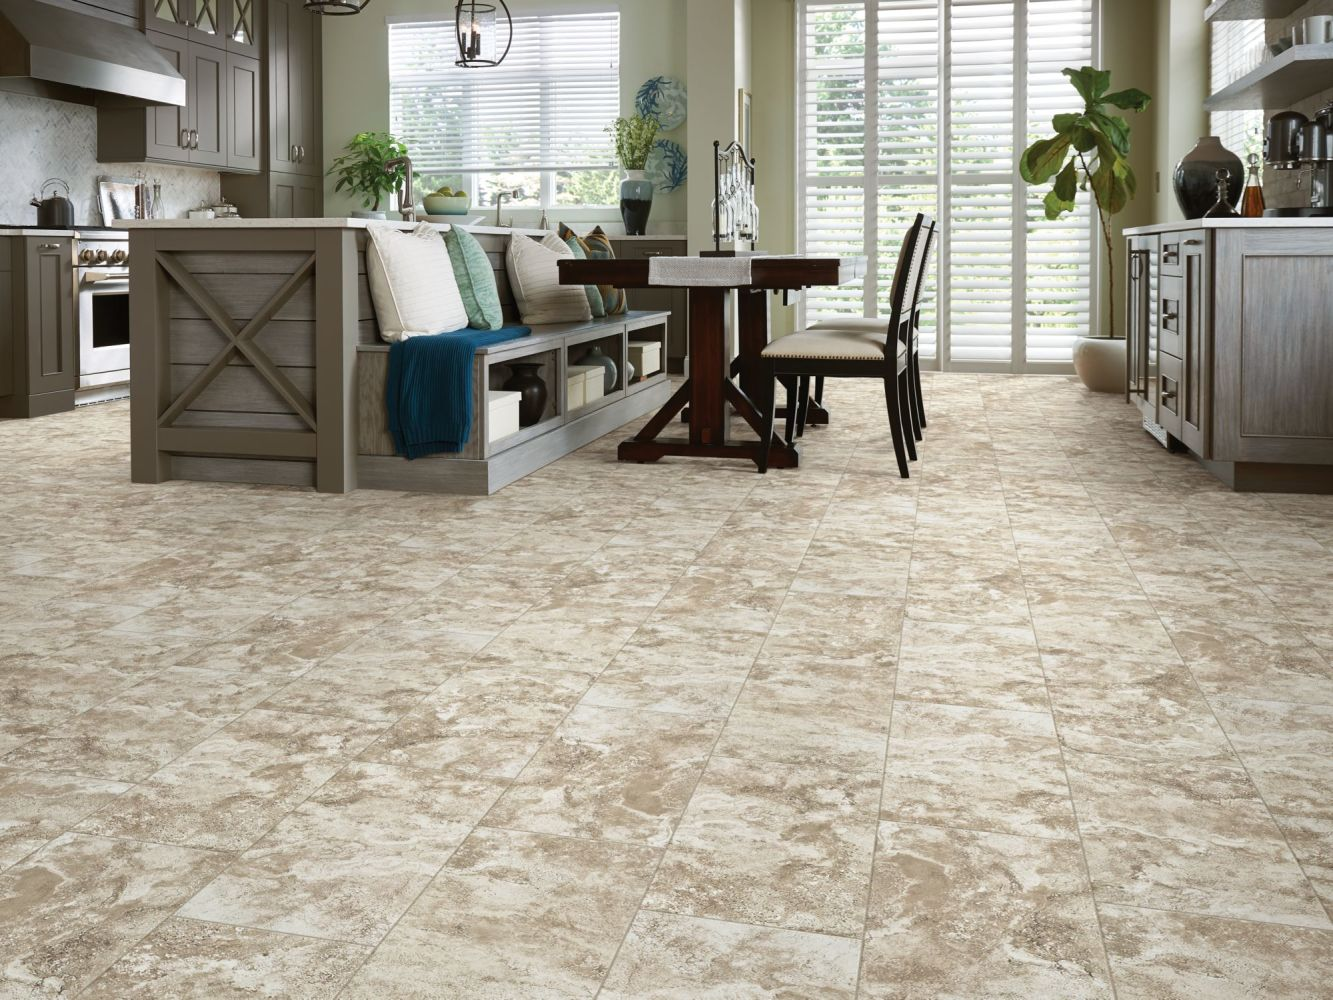 Shaw Floors Ceramic Solutions Stonework 12×24 Brown 00700_245TS